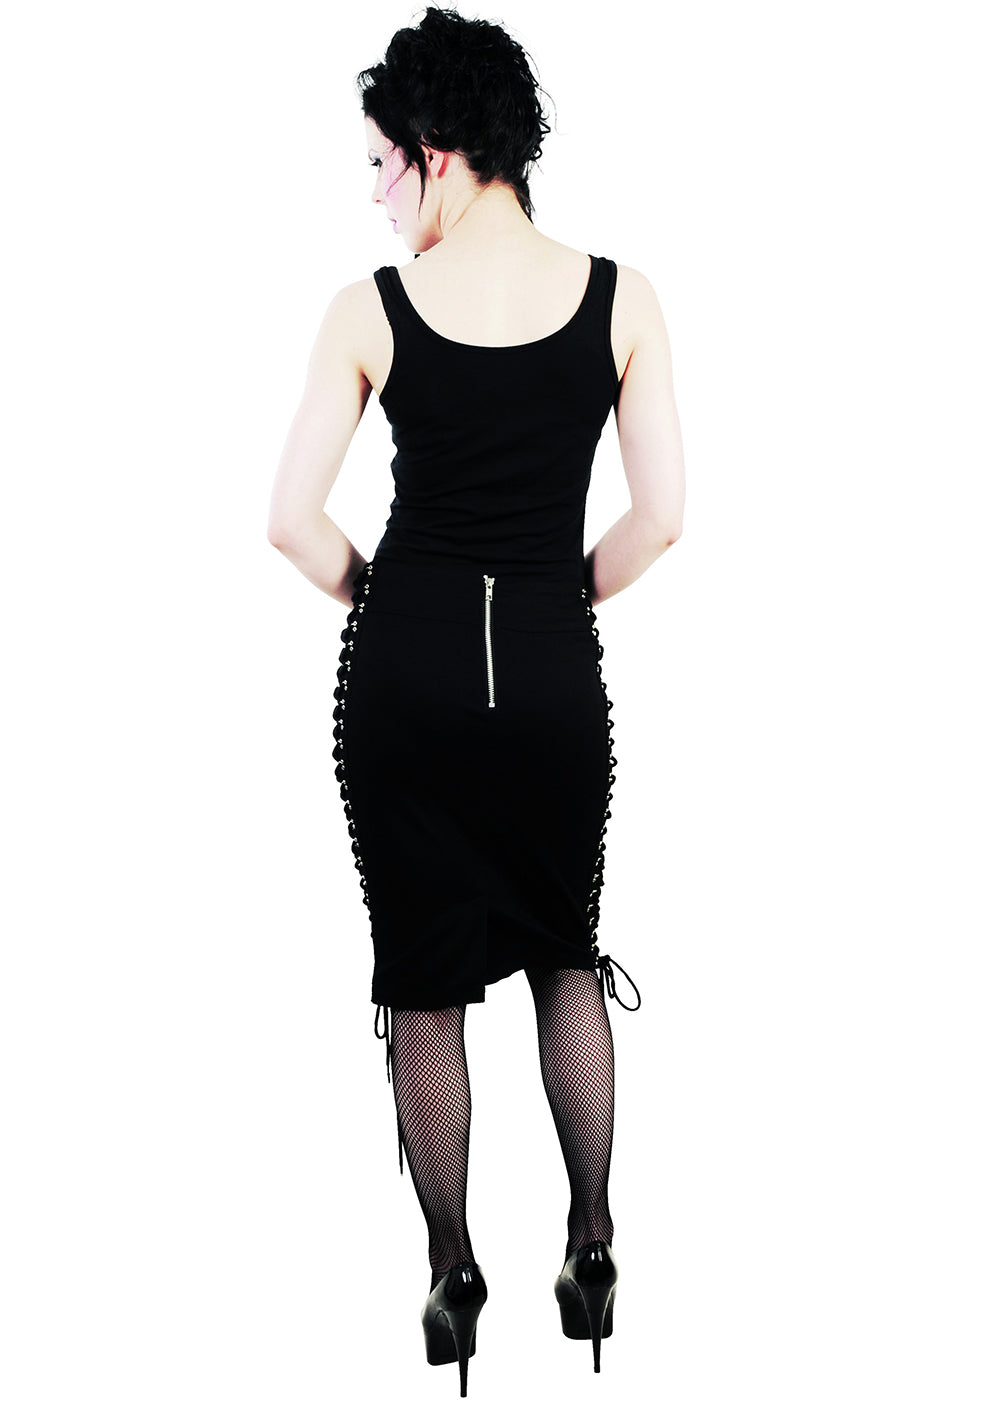 6268790e0 ... Load image into Gallery viewer, Pixie corset cyber gothic pencil skirt  ...